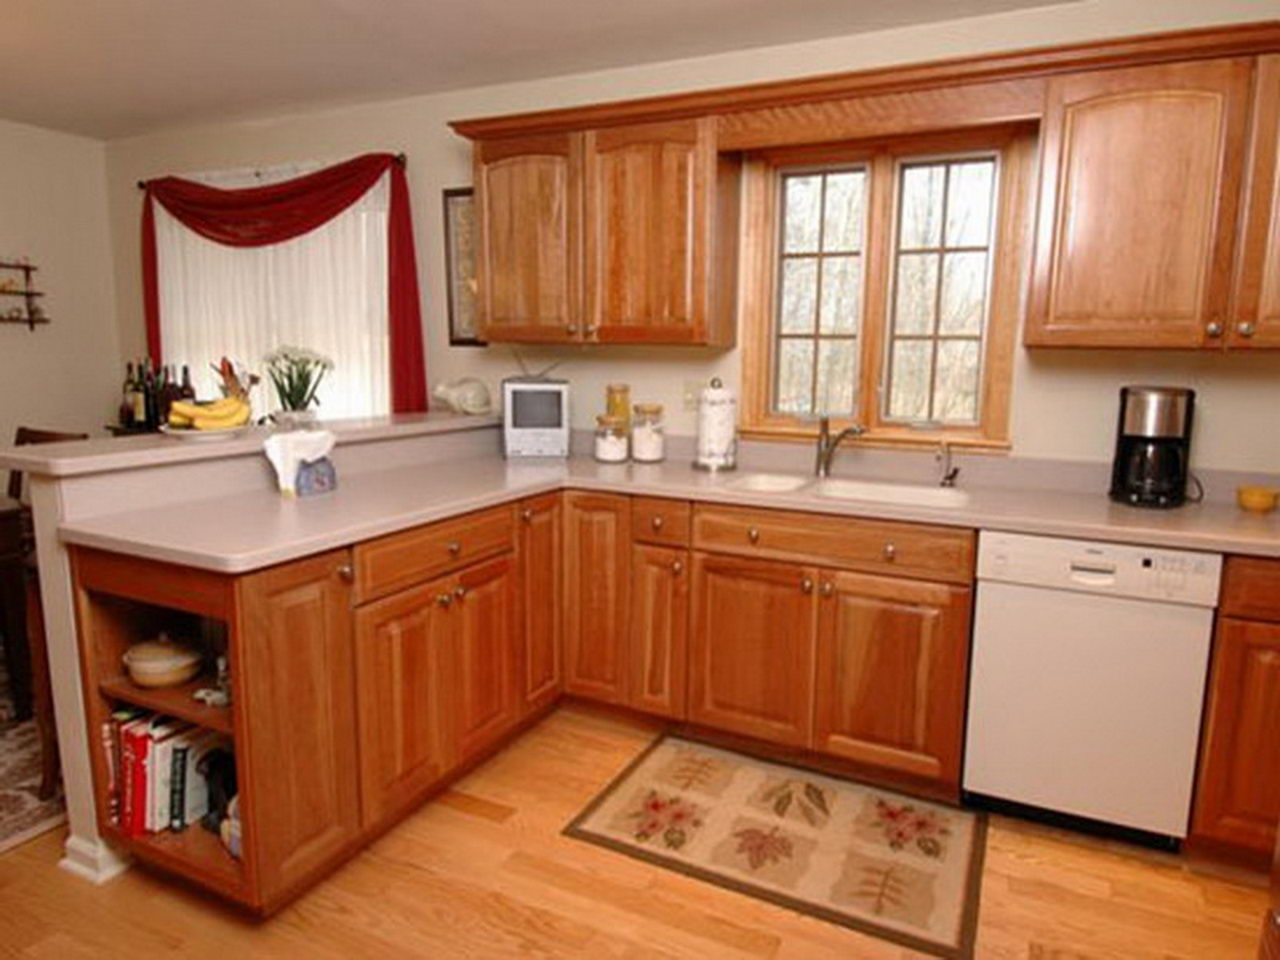 Kitchen cabinets and storage ideas homedizz for Kitchen designs cabinets